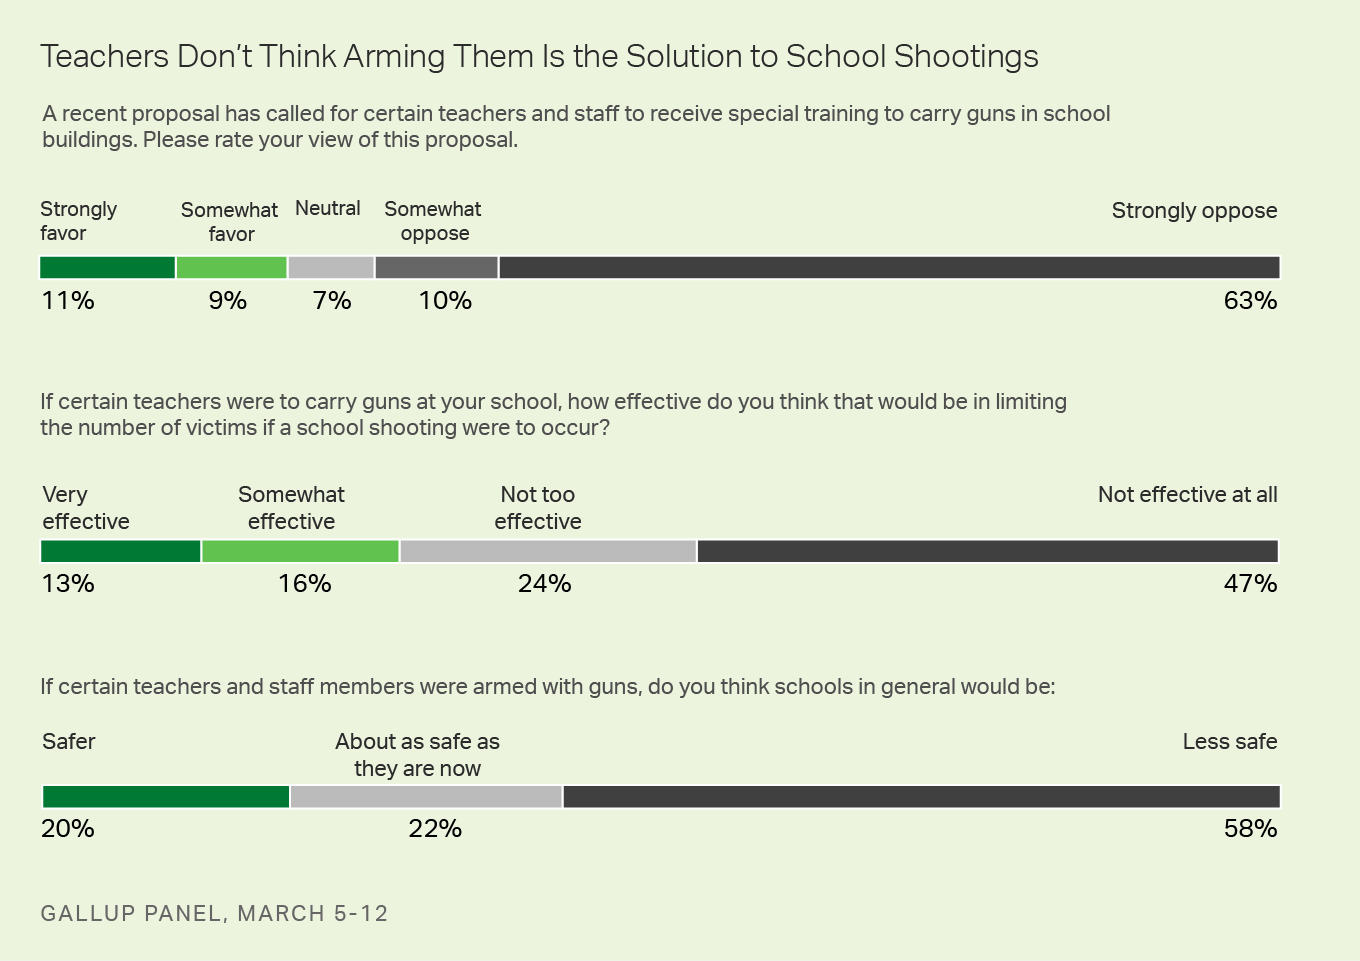 Teachers Don't think arming them is the solution to schcool shootings